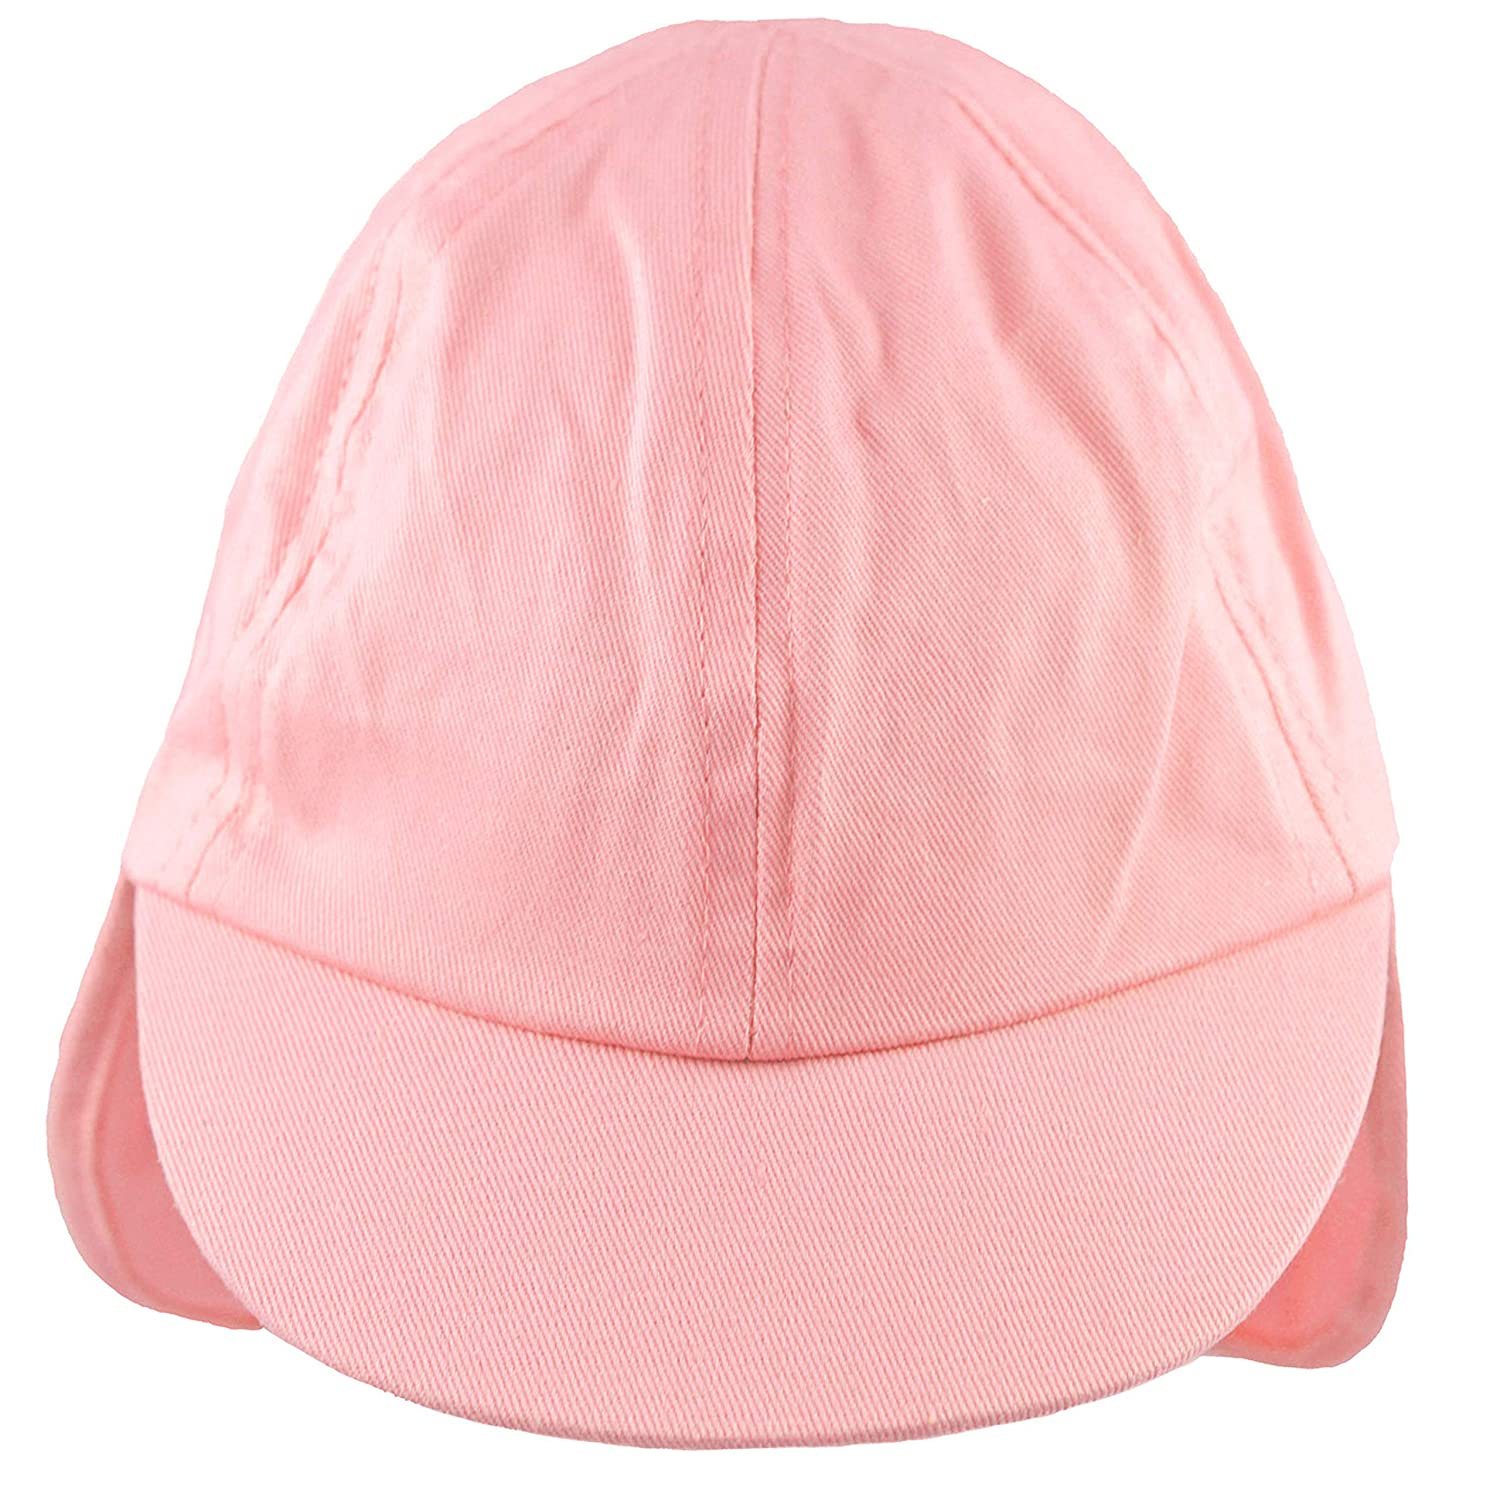 Pesci Baby Girls Summer Legionnaire Sun Hat Roll up Neck Flap Pink (6-12 Months)